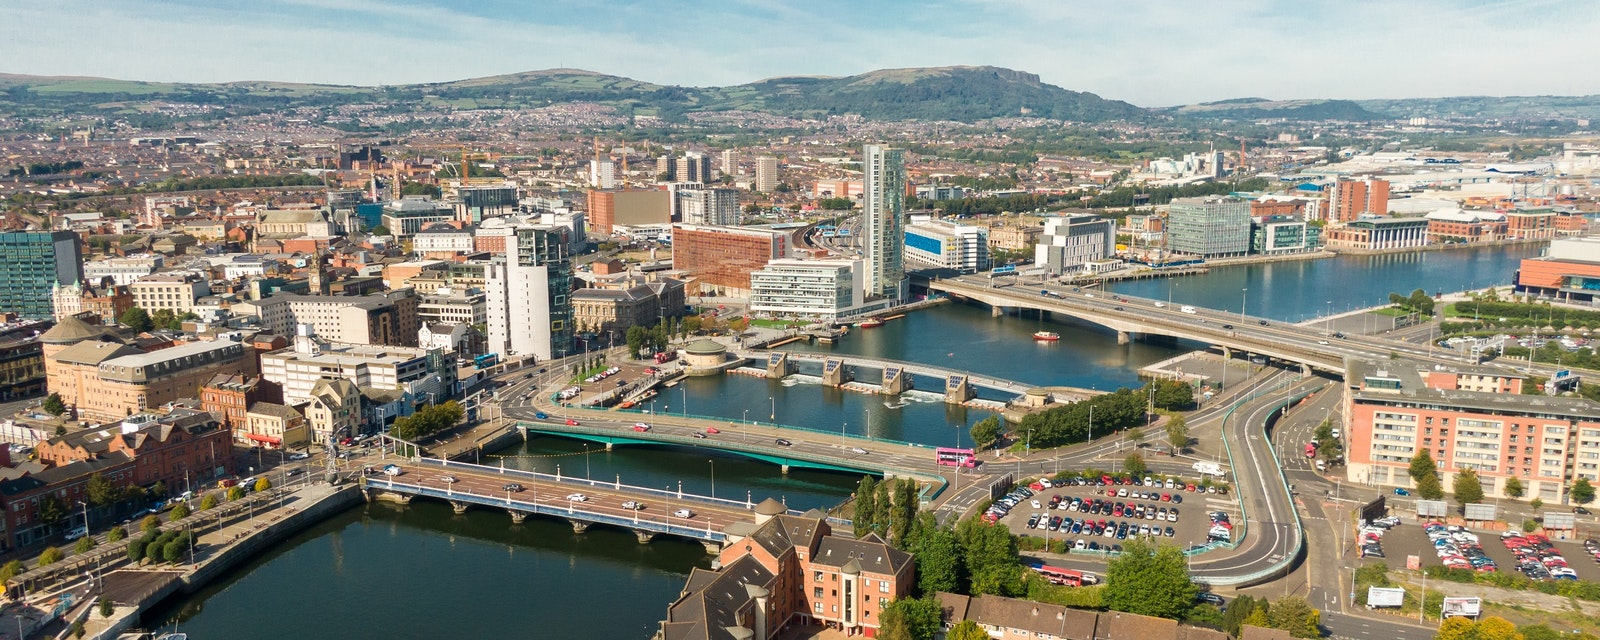 Aerial,View,On,River,And,Buildings,In,City,Center,Of